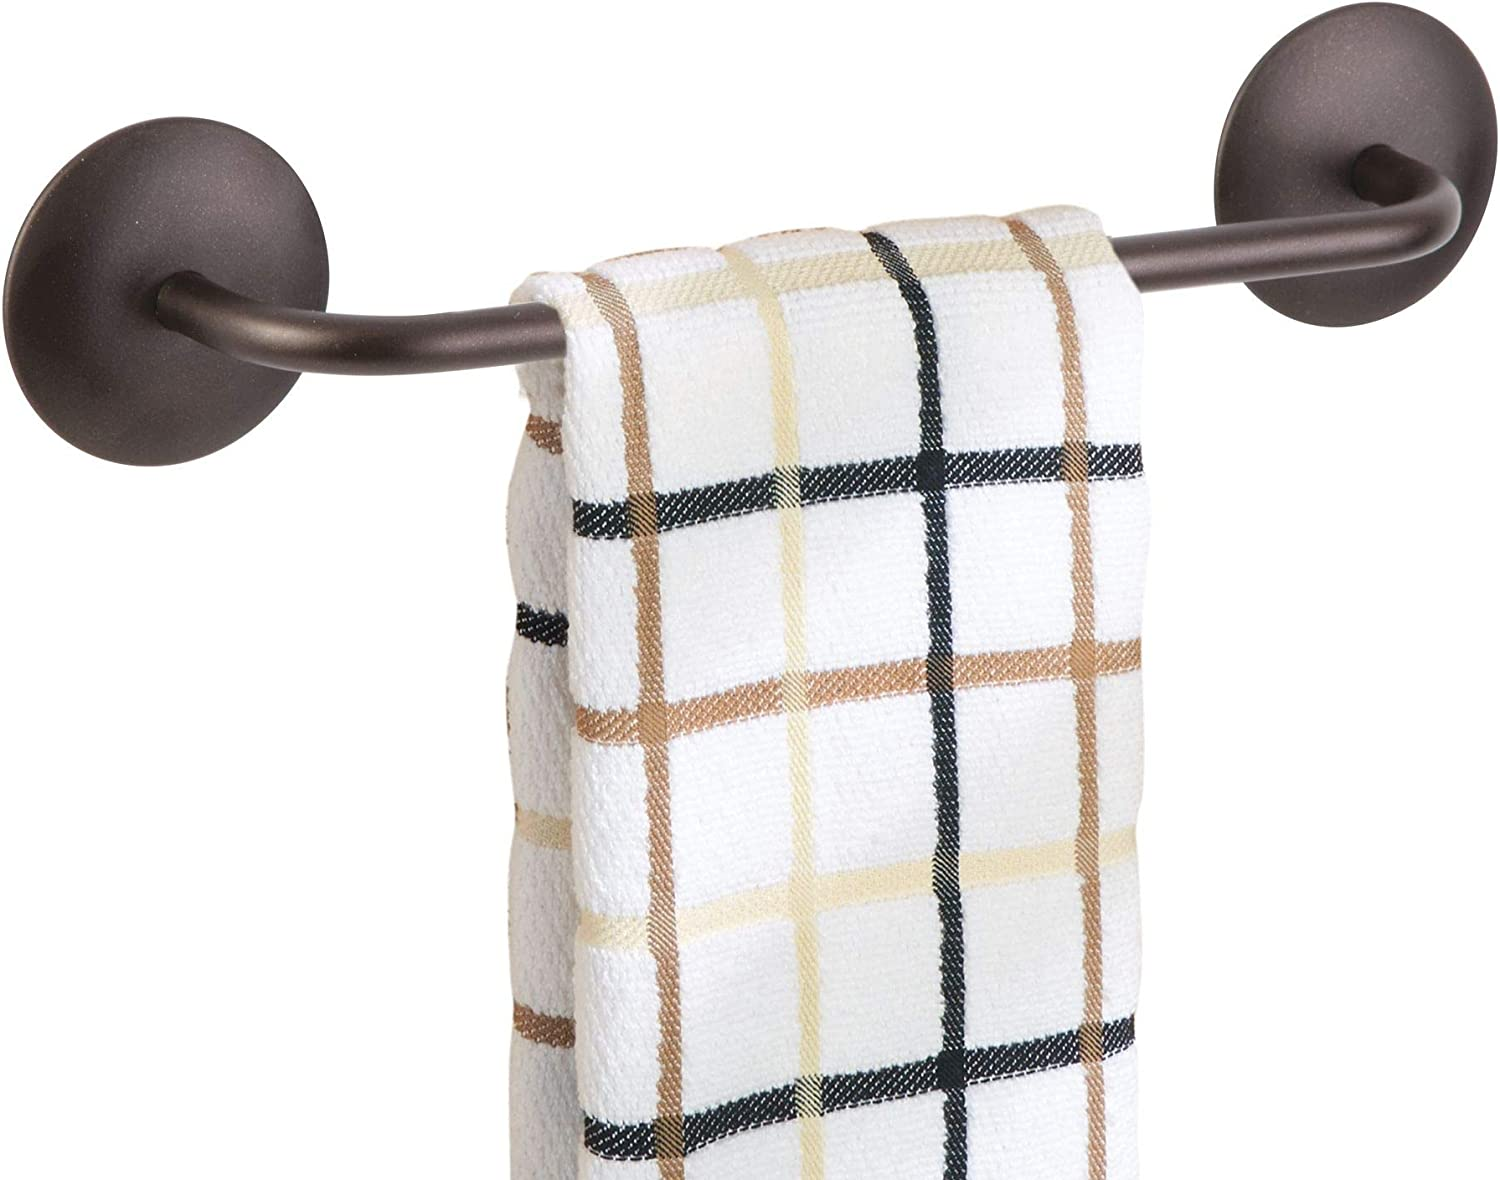 """iDesign InterDesign AFFIXX, Peel-and-Stick Adhesive Towel Bar Holder for Kitchen or Bathroom - 8.5"""", Bronze, Inches"""